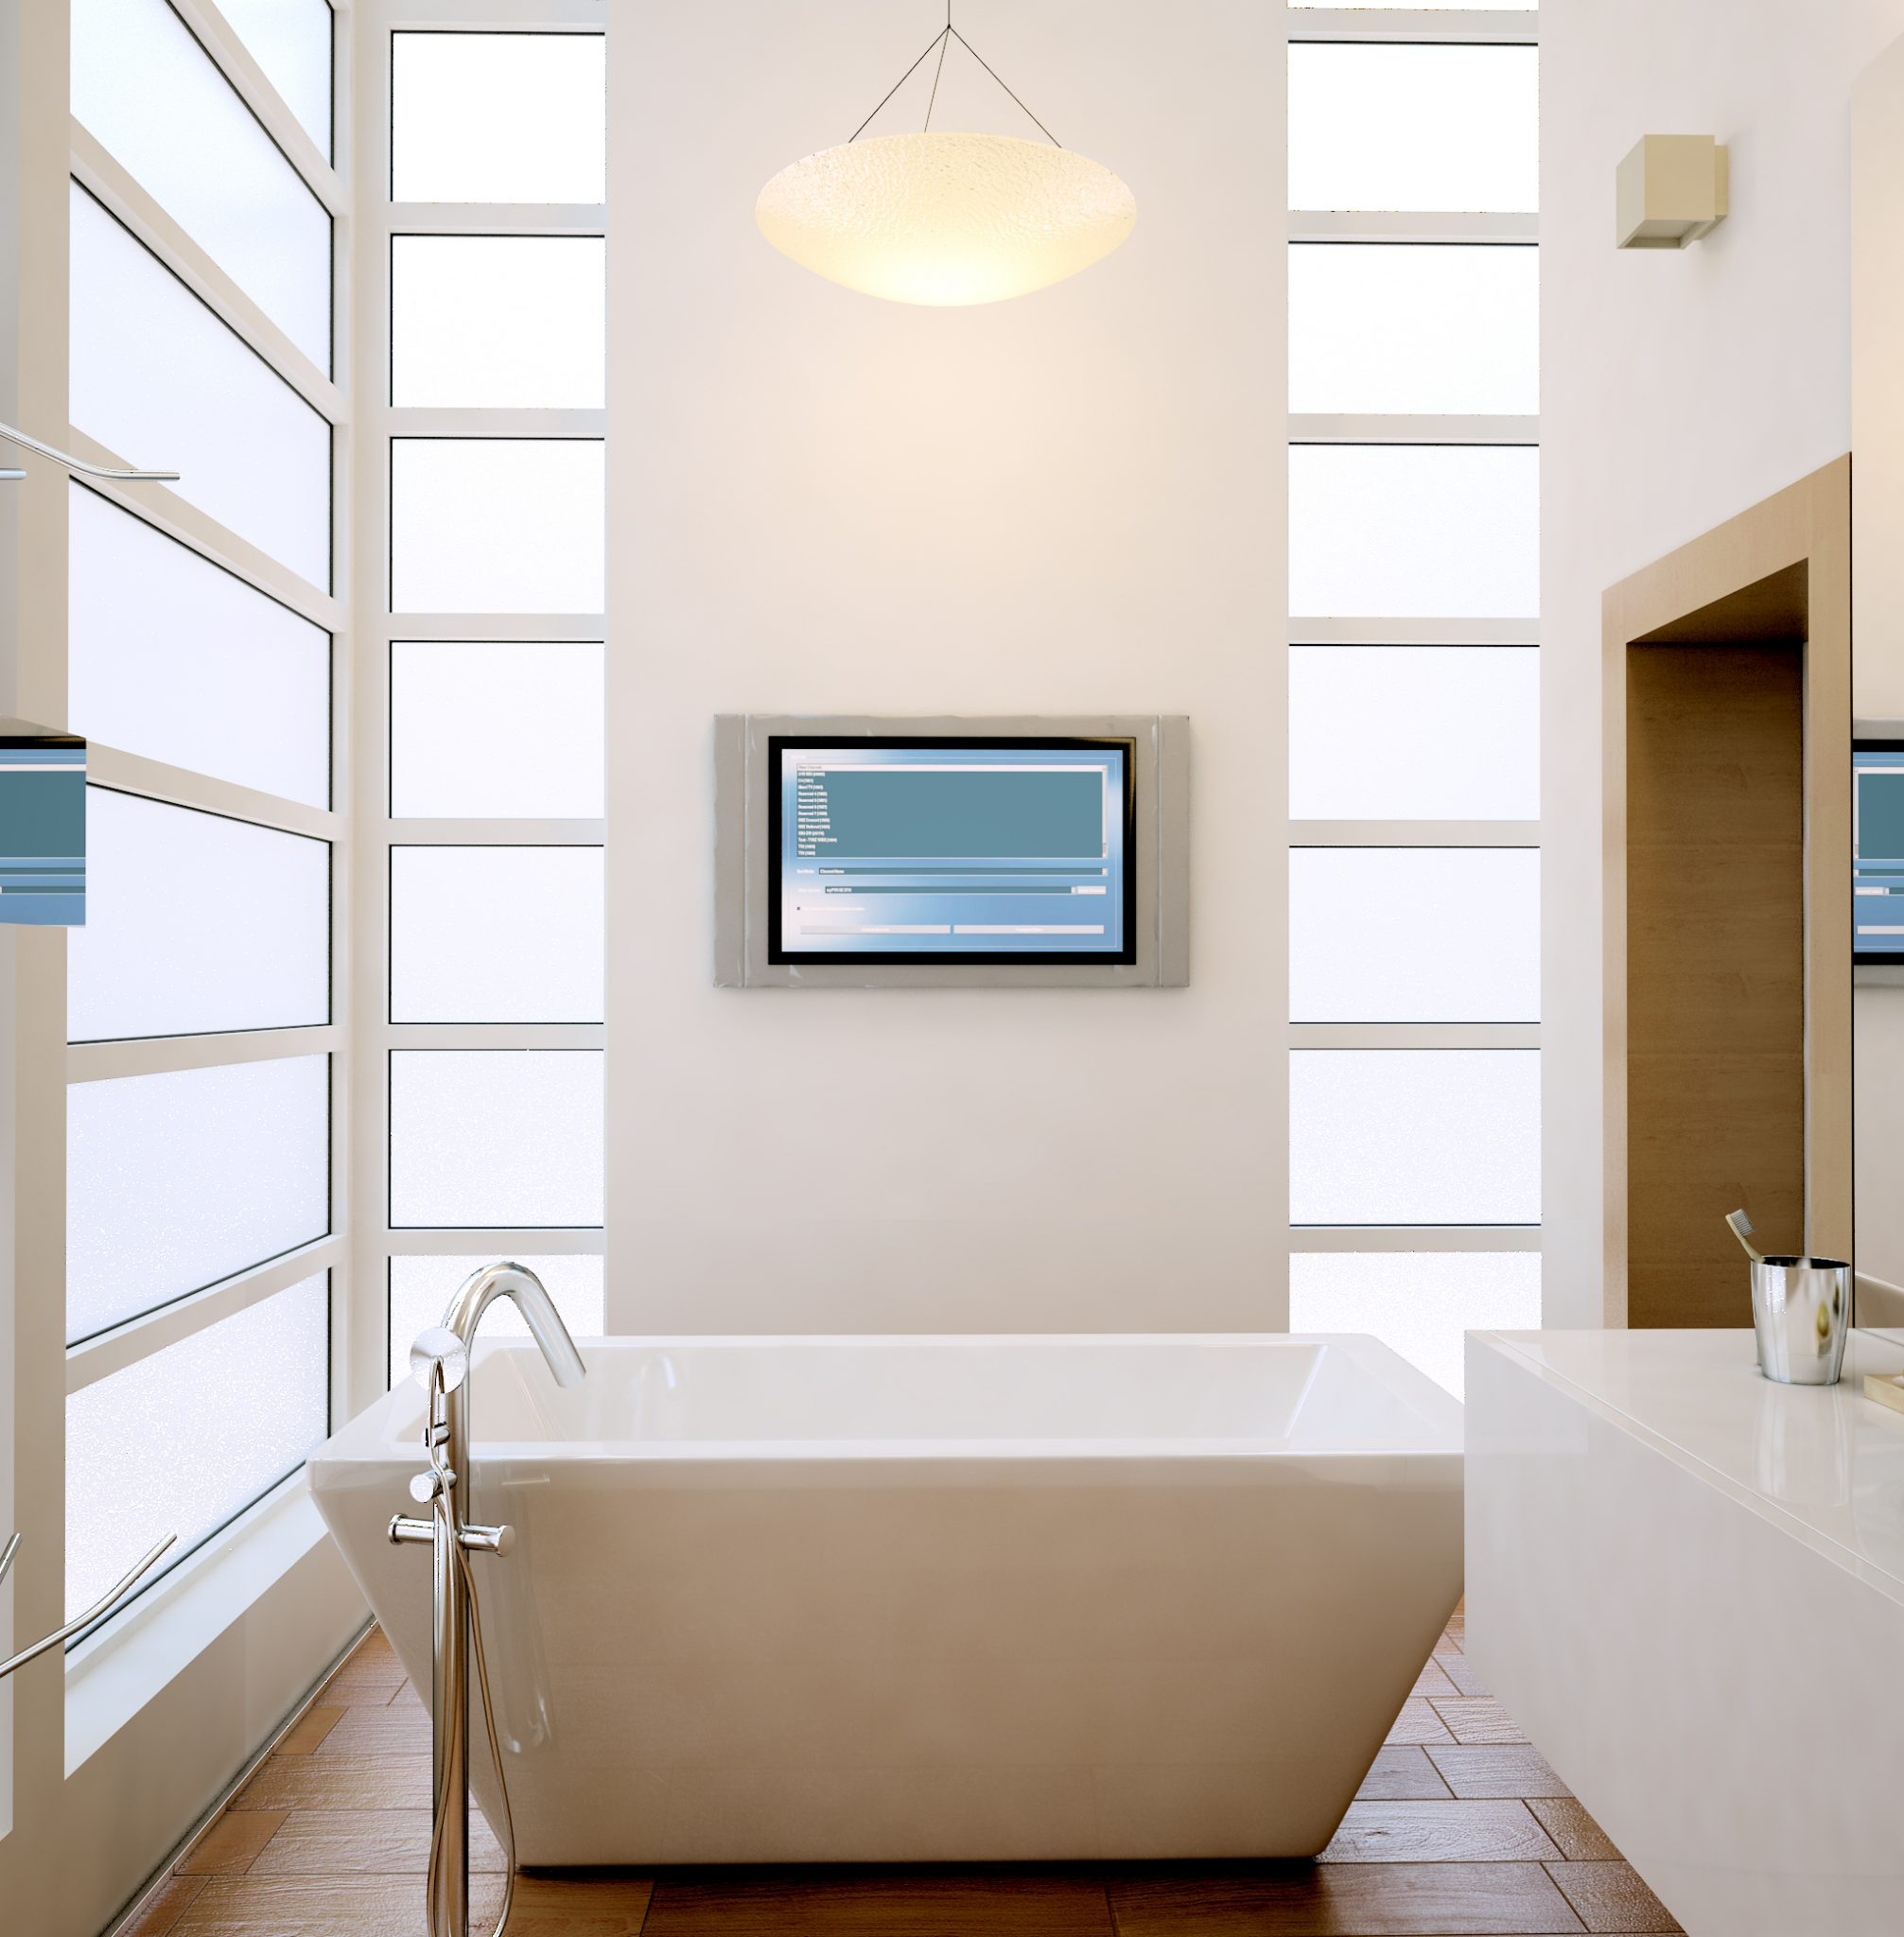 freestanding products standing free shop resin orfeo barclay bathtub tubs limited tub